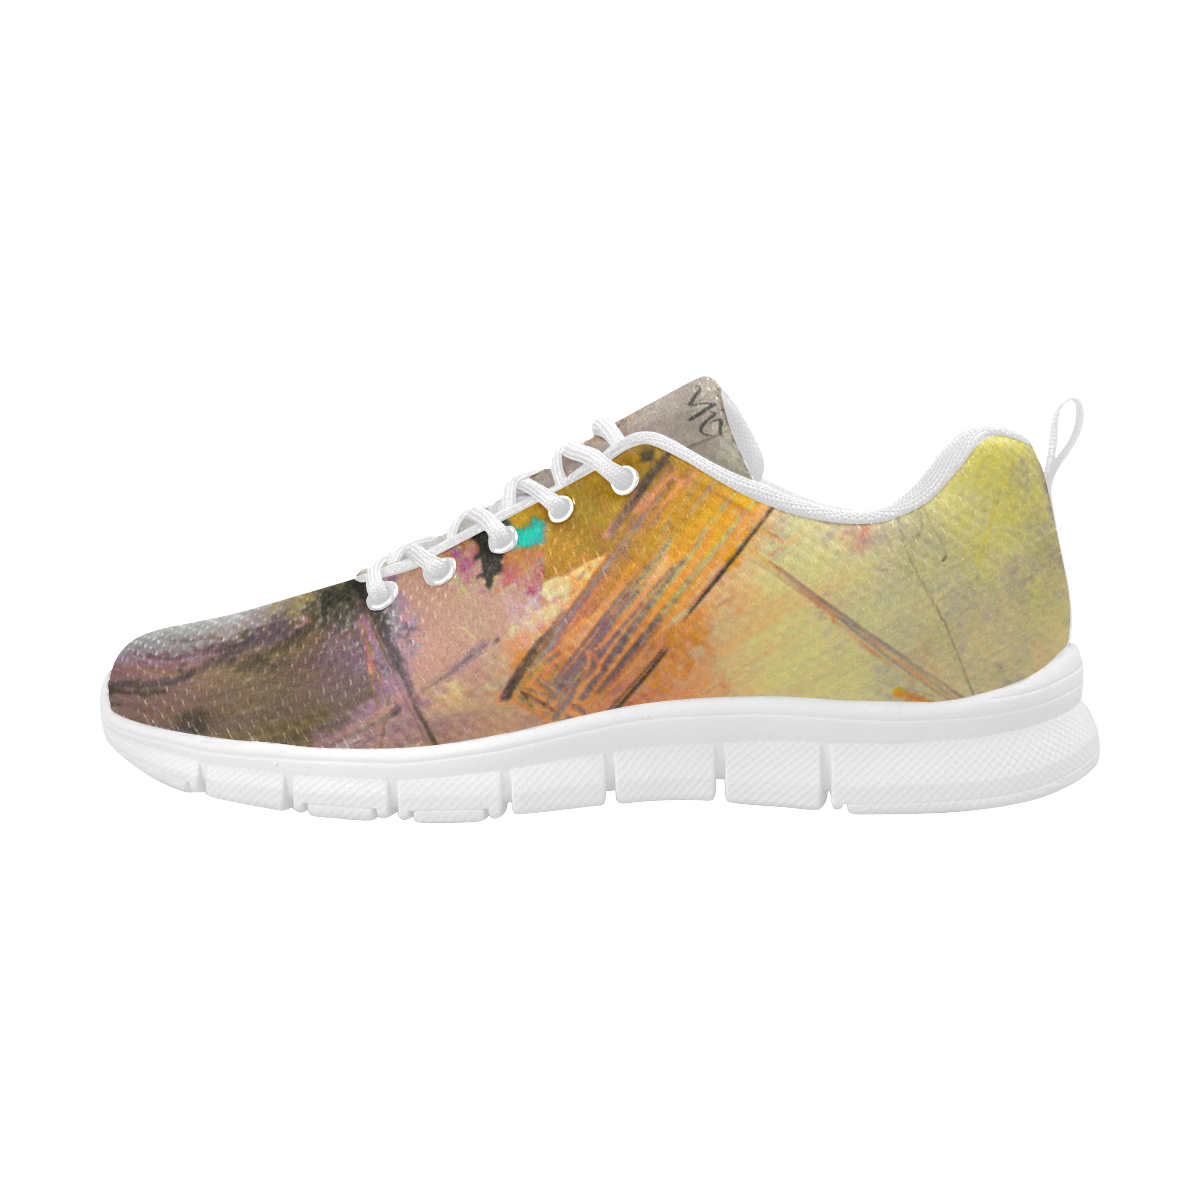 Lua yellow Women's Breathable Running Shoes (Model 055)